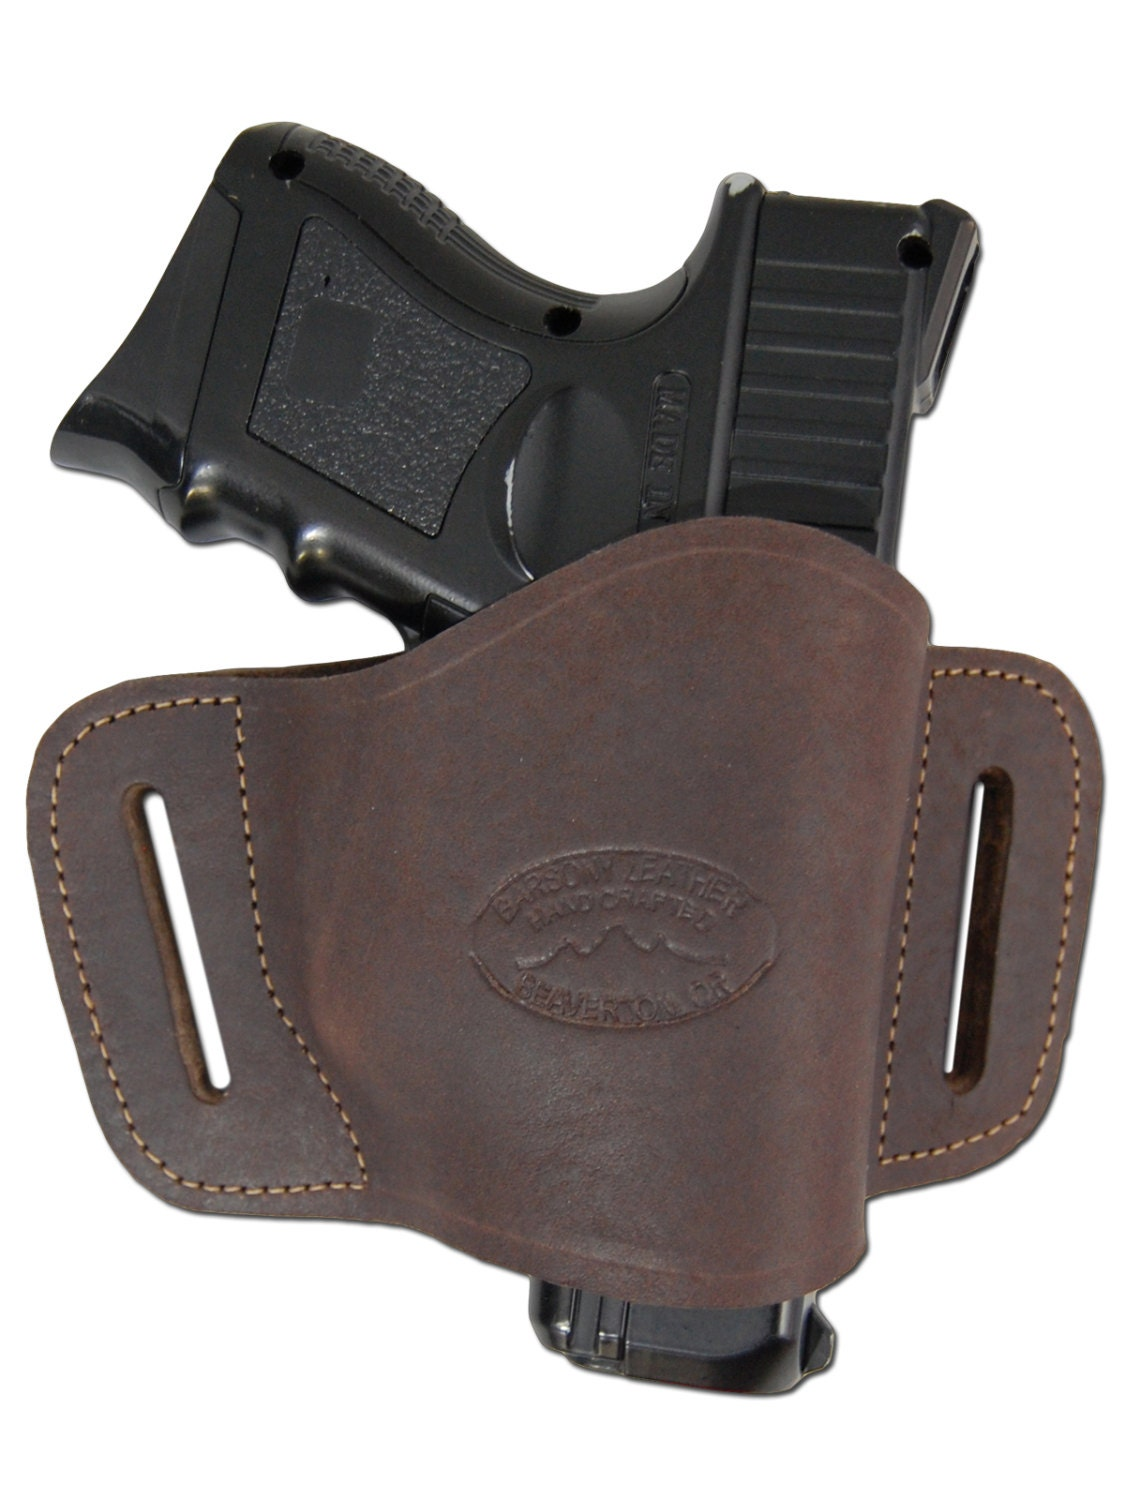 new brown leather belt slide gun holster for compact